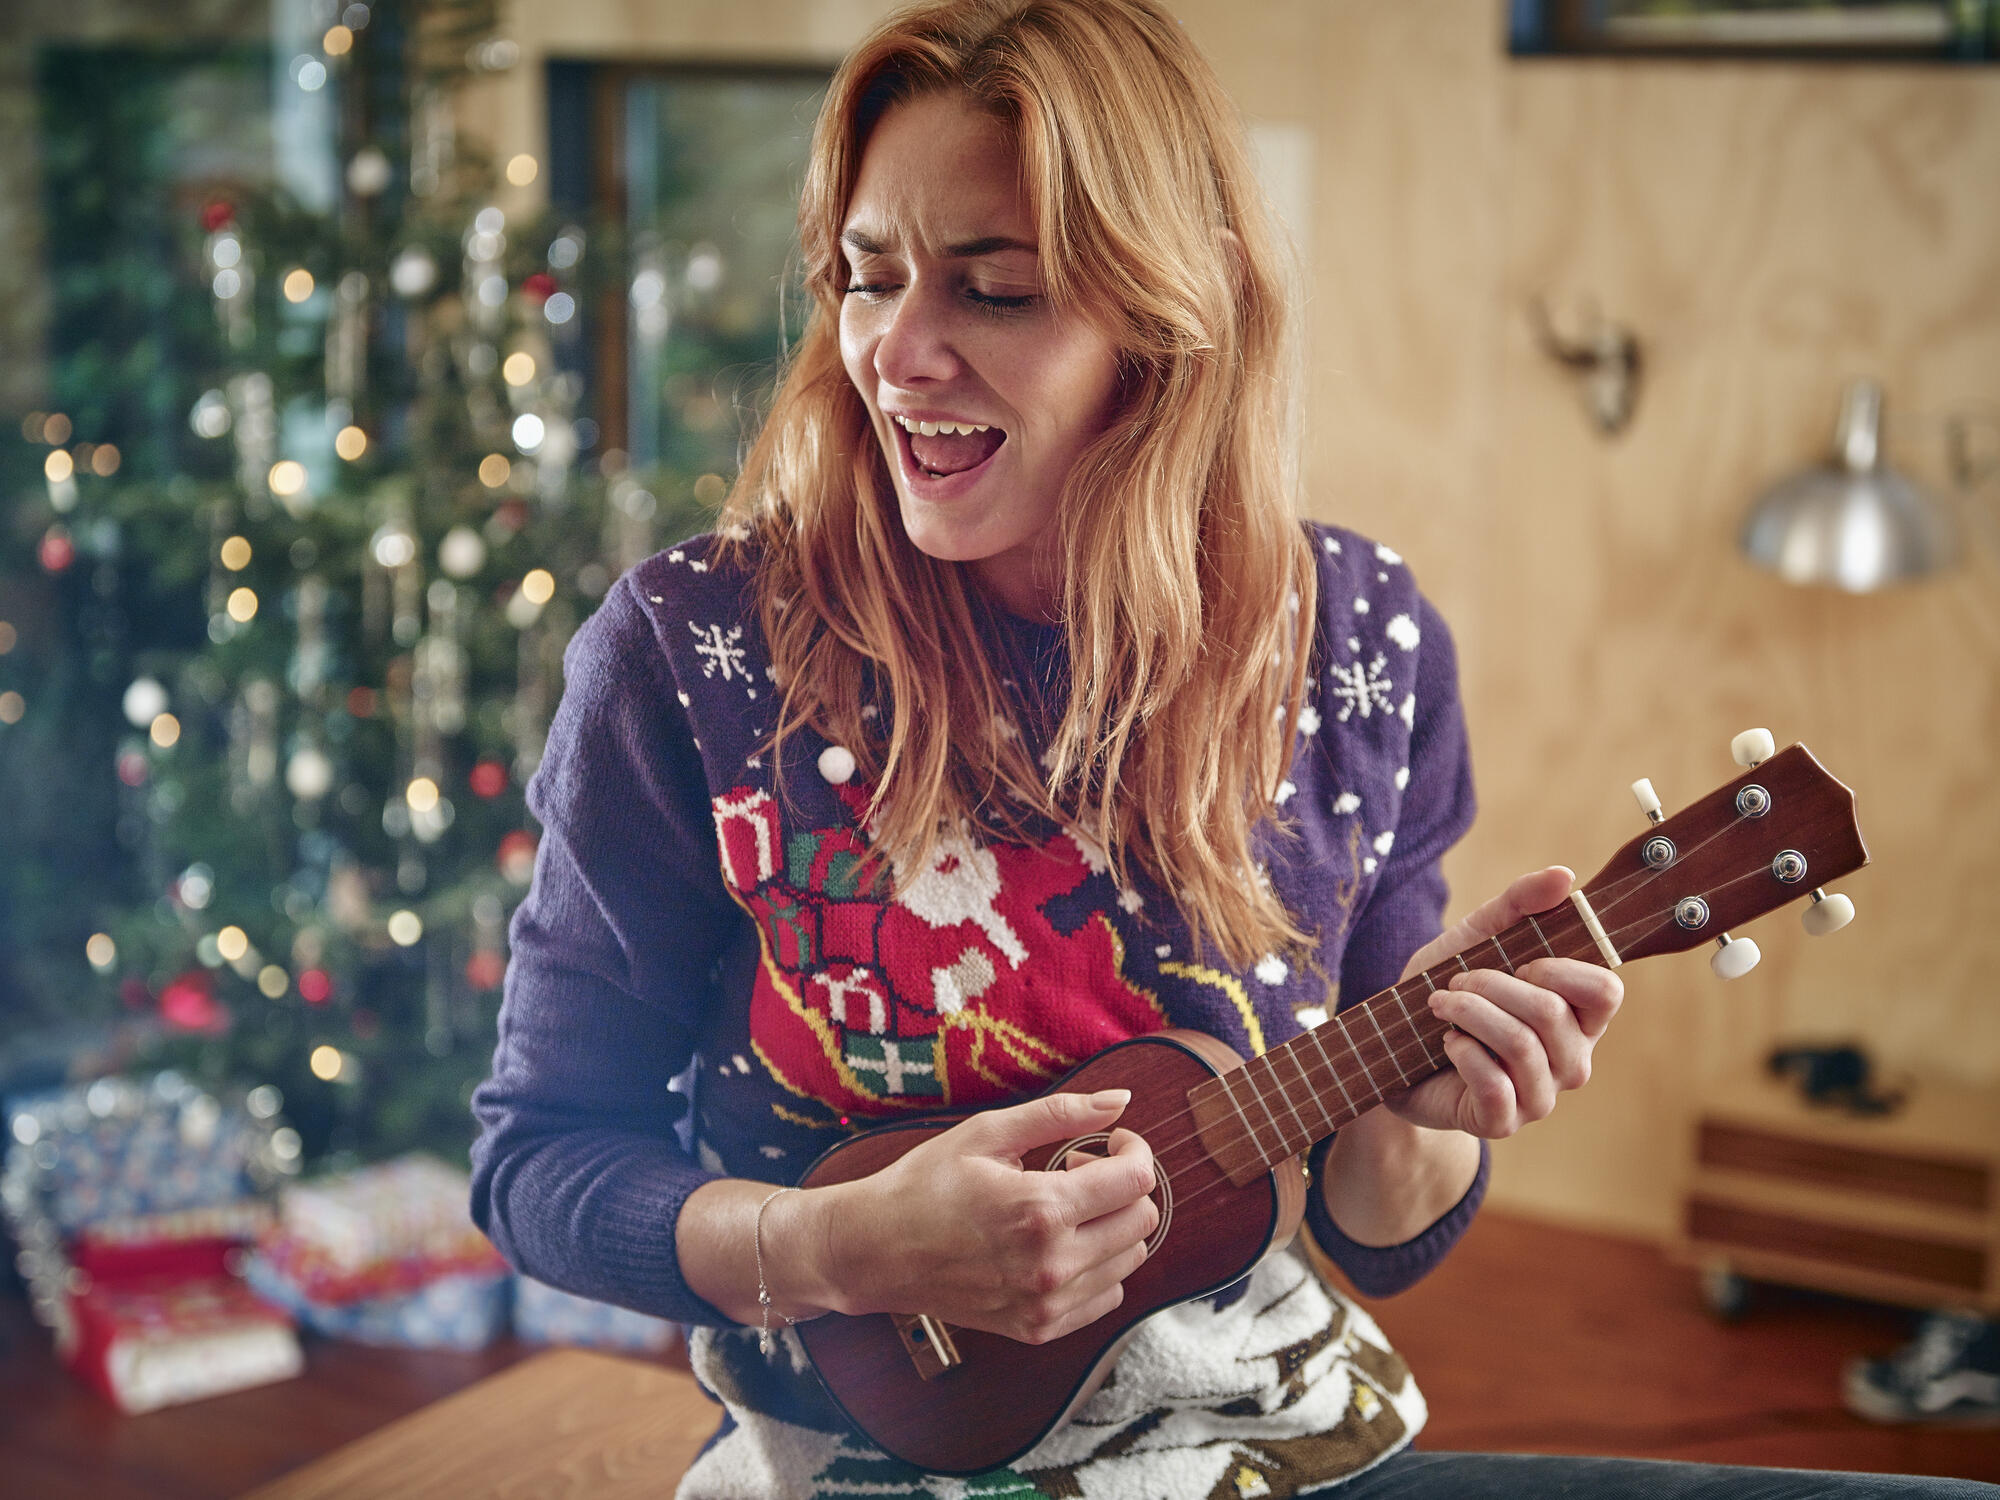 playing a ukelele at home during the holidays